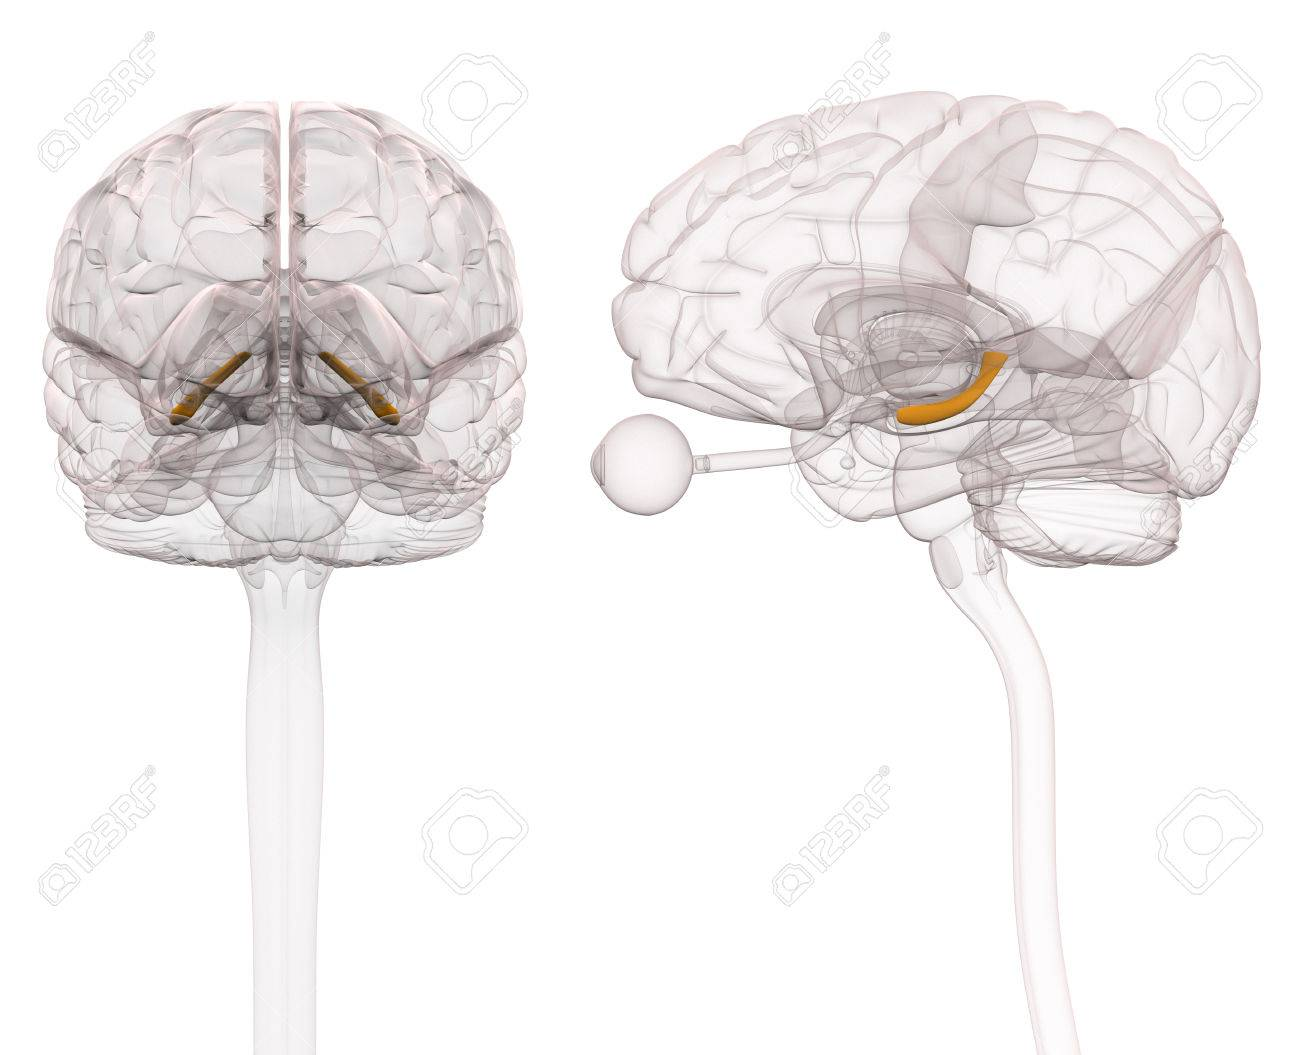 Hippocampus Brain Anatomy - 3d Illustration Stock Photo, Picture And ...